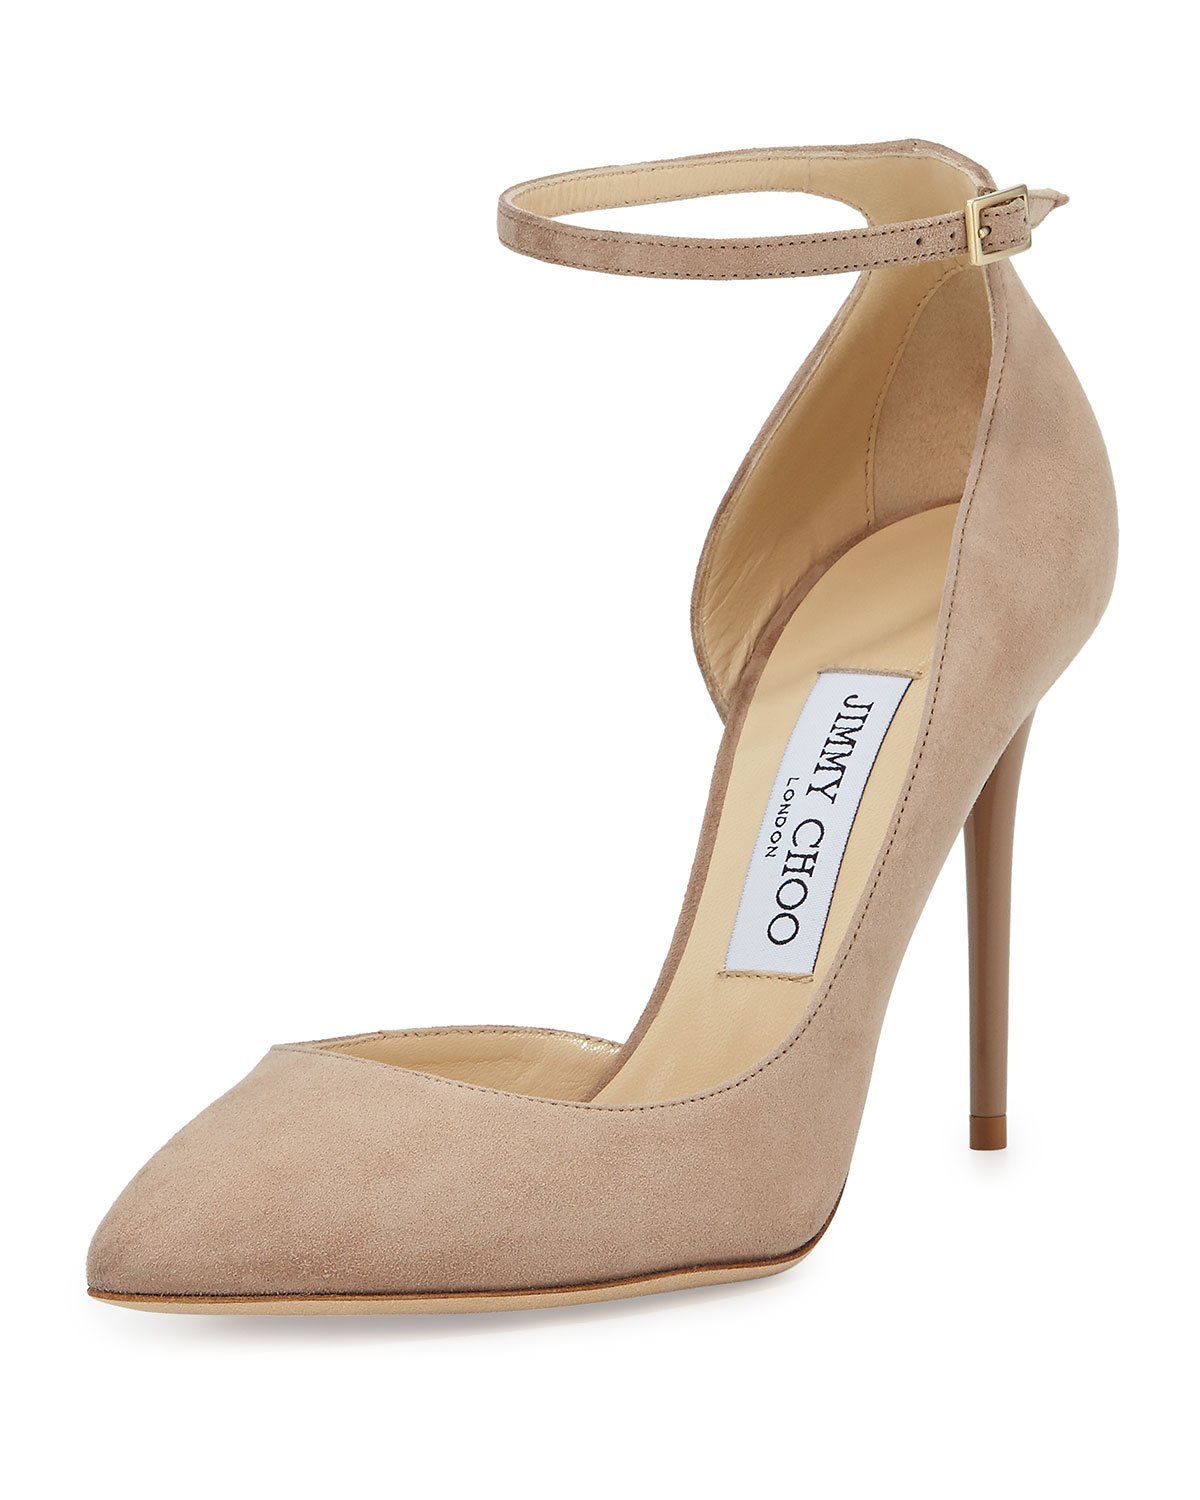 48530f3d7e8 Jimmy Choo Lucy Half-d Orsay Suede Pump